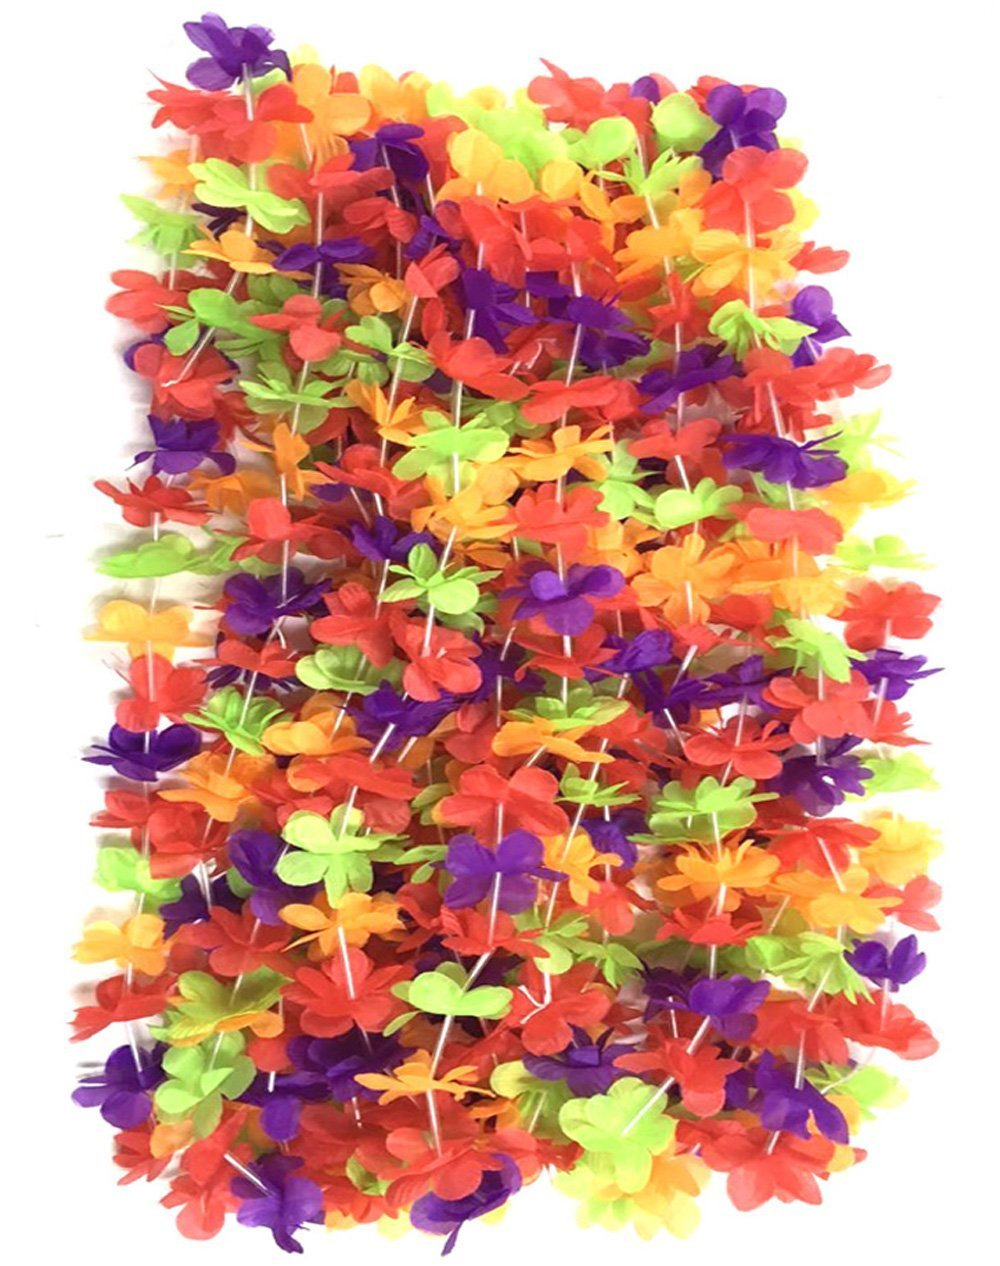 Christmas beach ornaments - 2016 Hawaiian Colorful Flower Leis Necklaces For Tropical Island Beach Theme Party Event Set Of